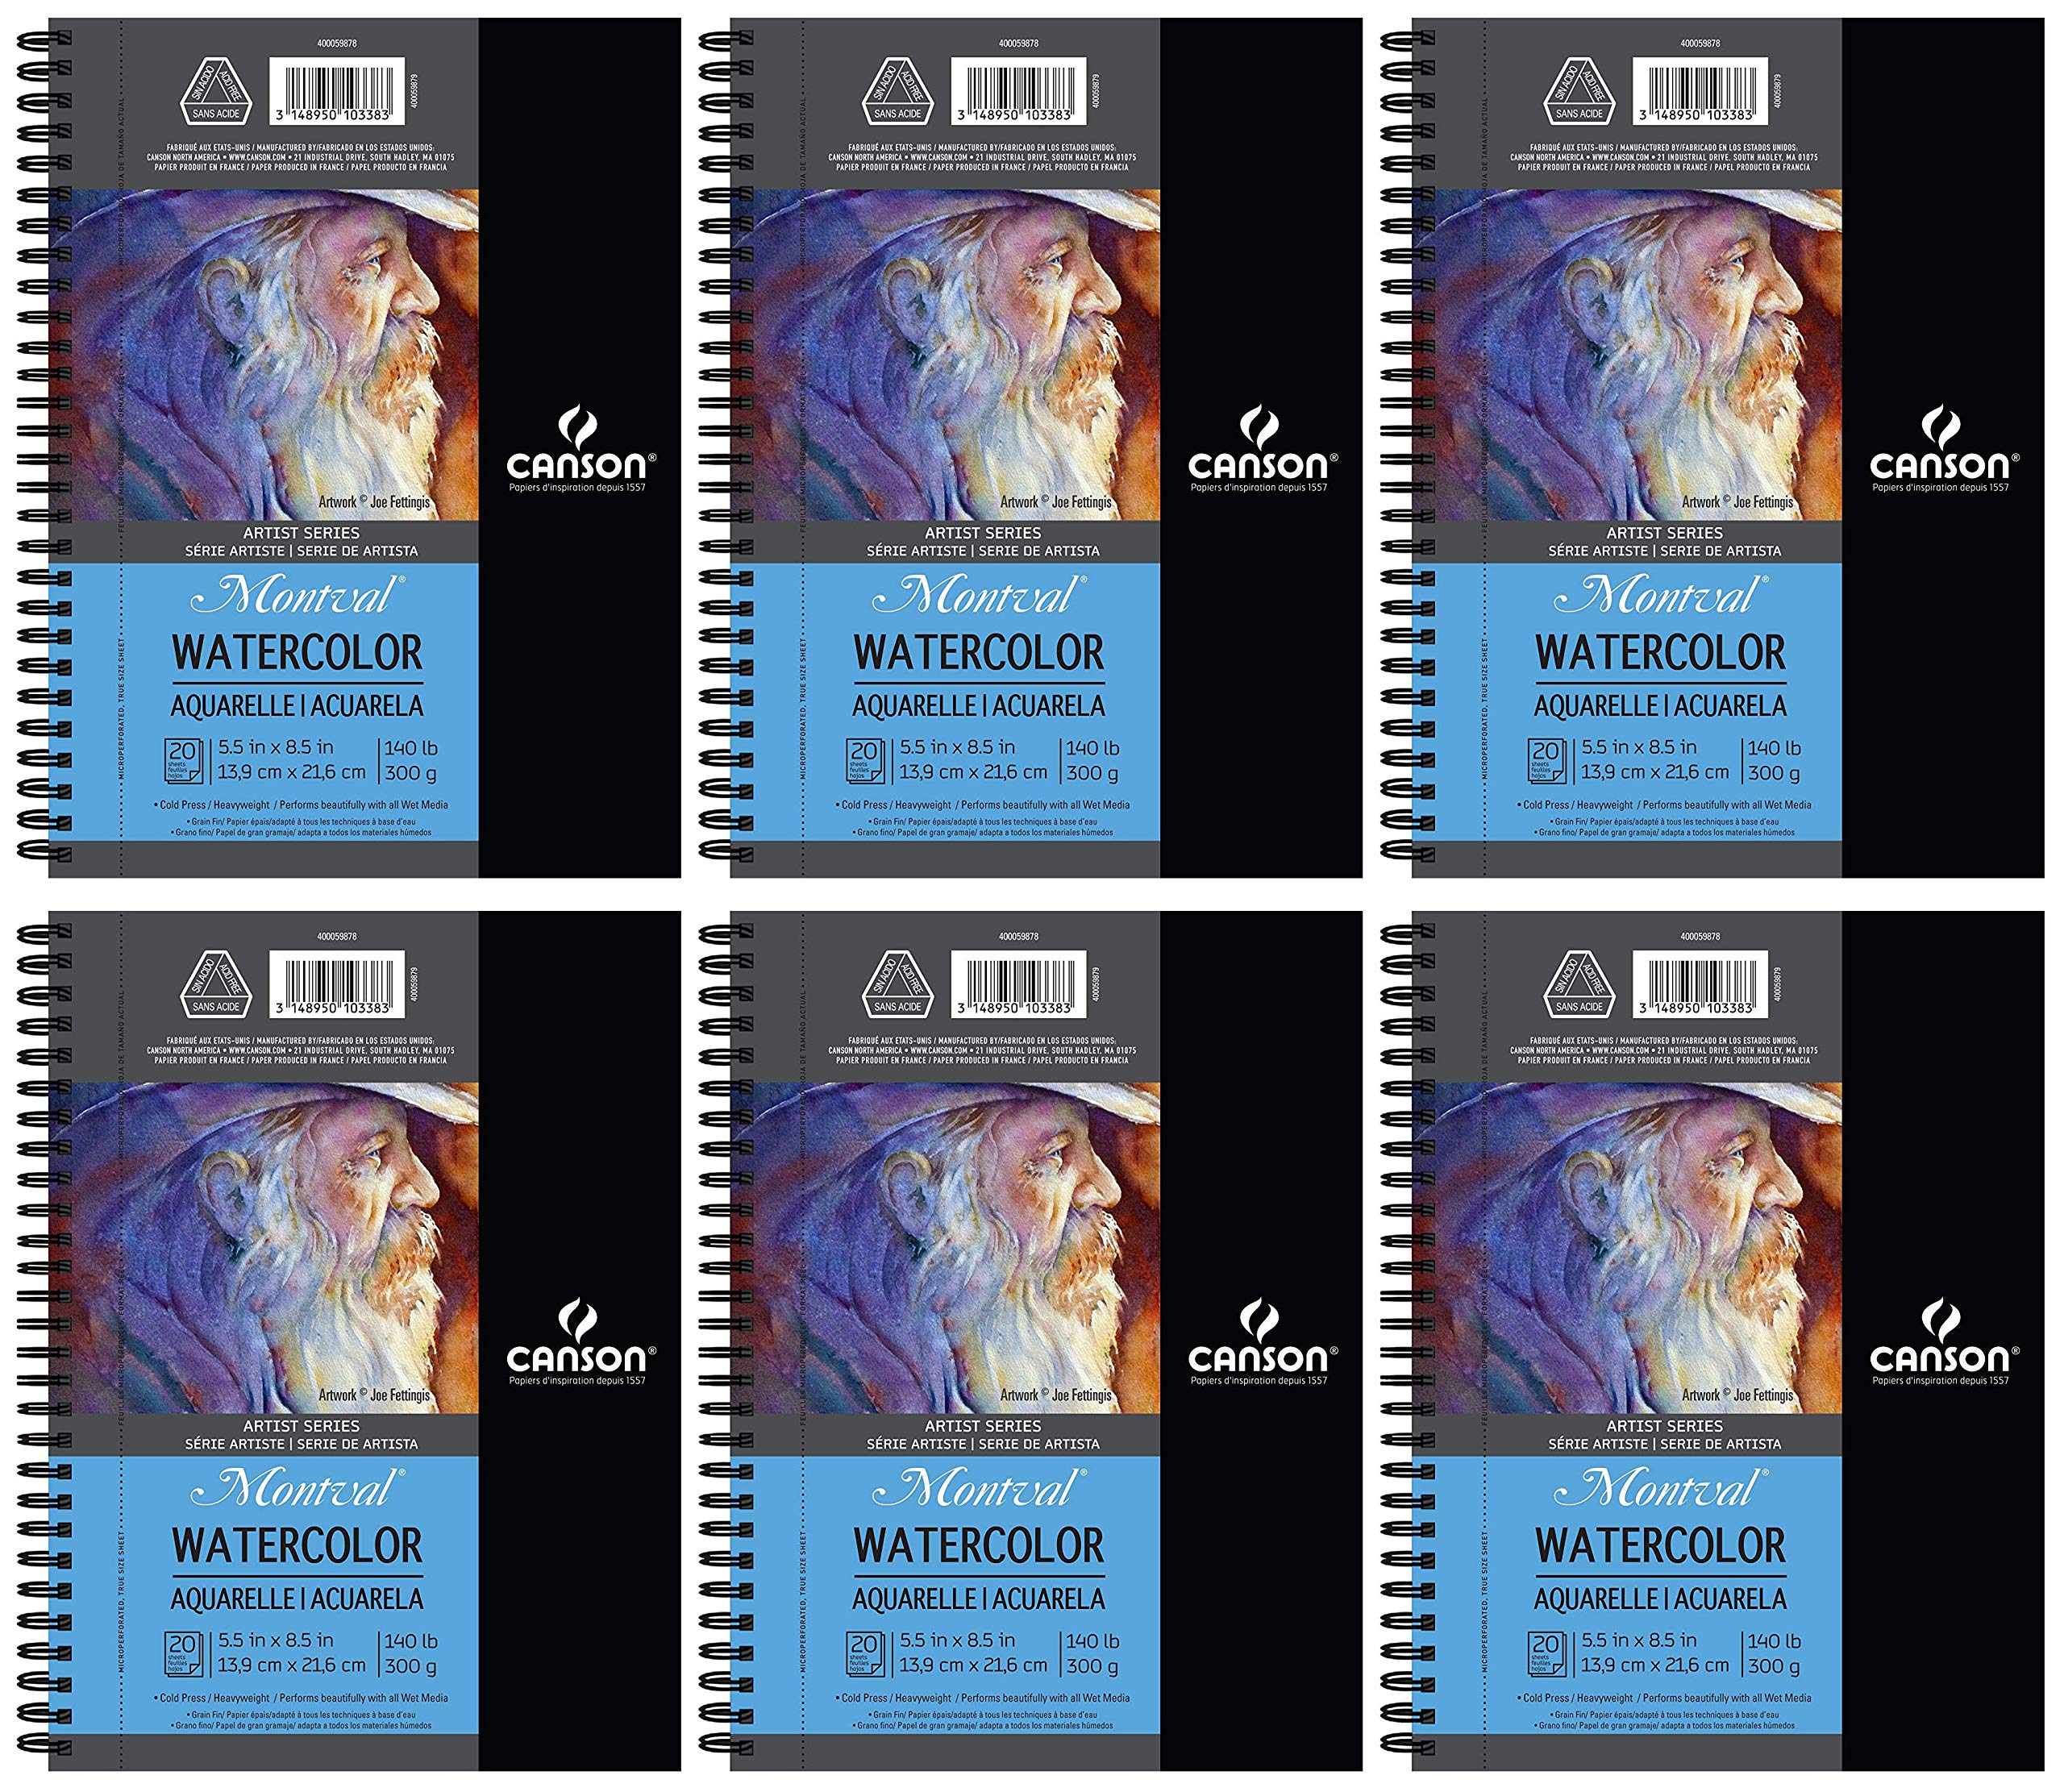 6-Pack Case - Canson Artist Series Watercolor Pad, 5.5'' x 8.5'' Side Wire